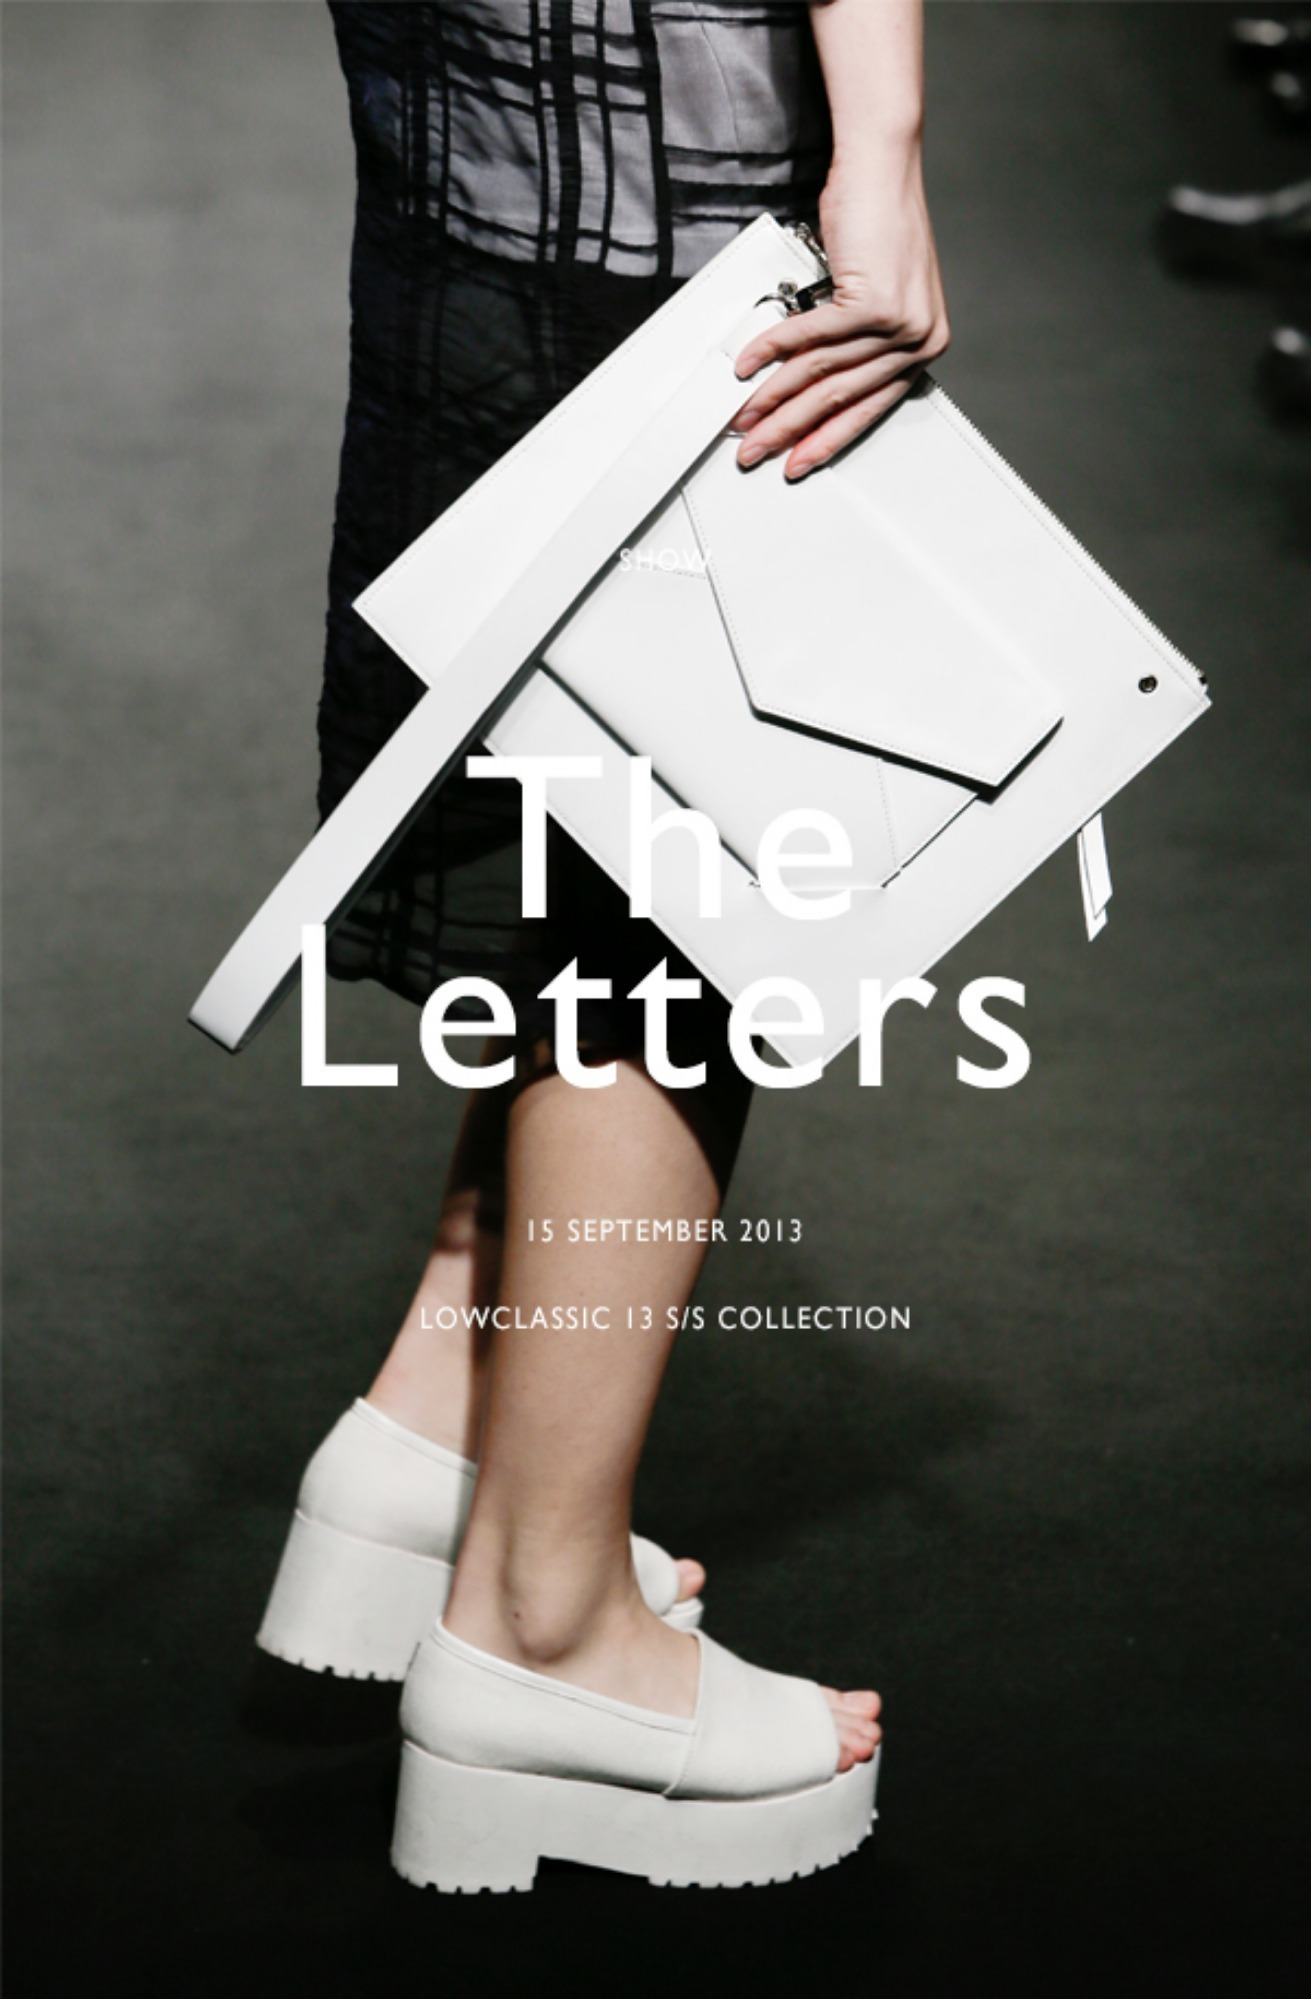 LOW CLASSIC 13 S/S Collection 'The Letters'